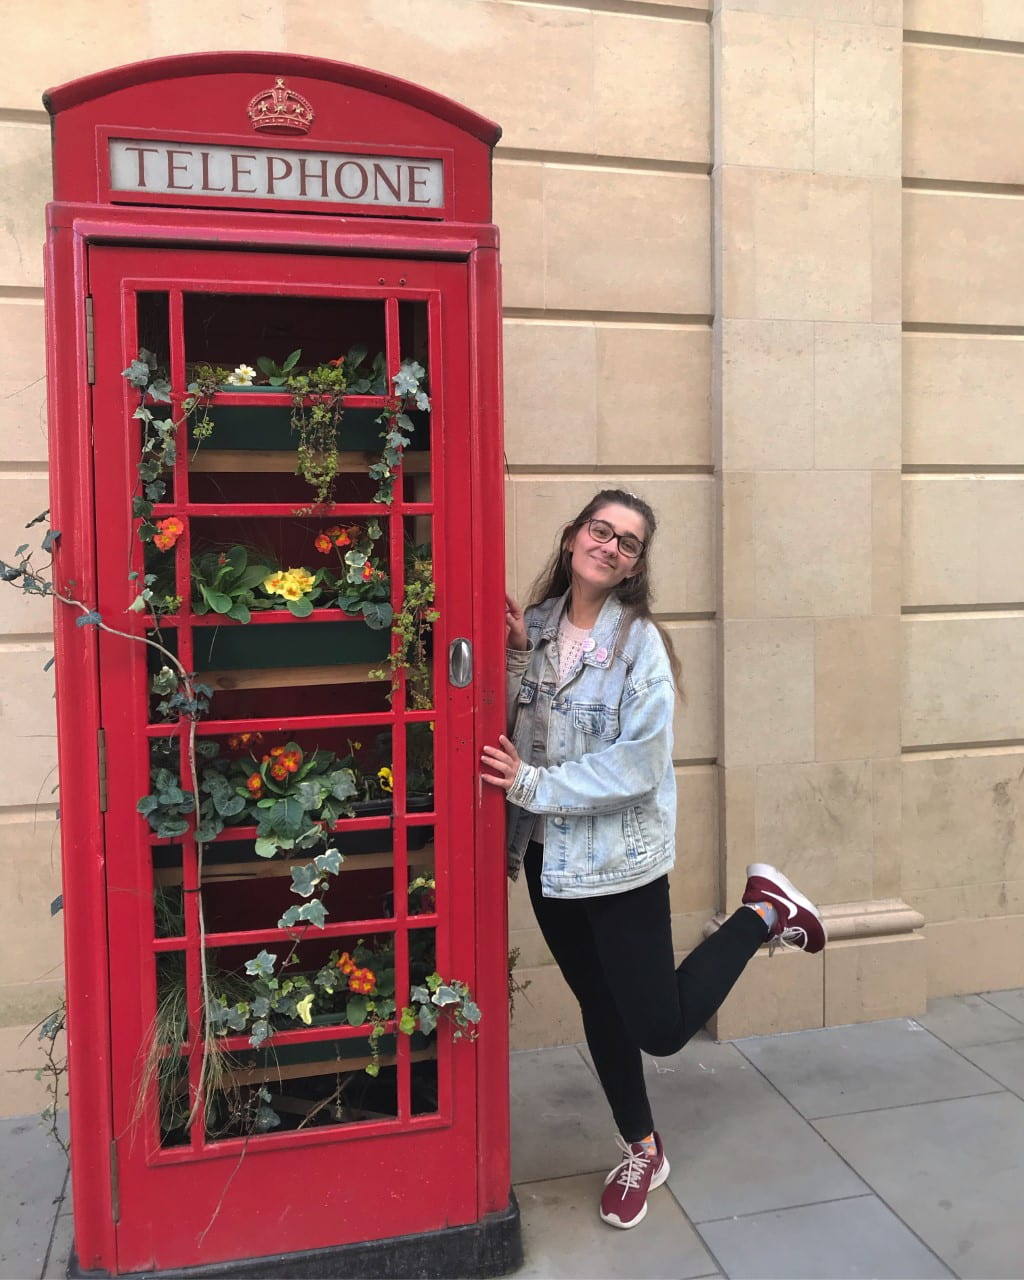 Kelsey with telephone booth